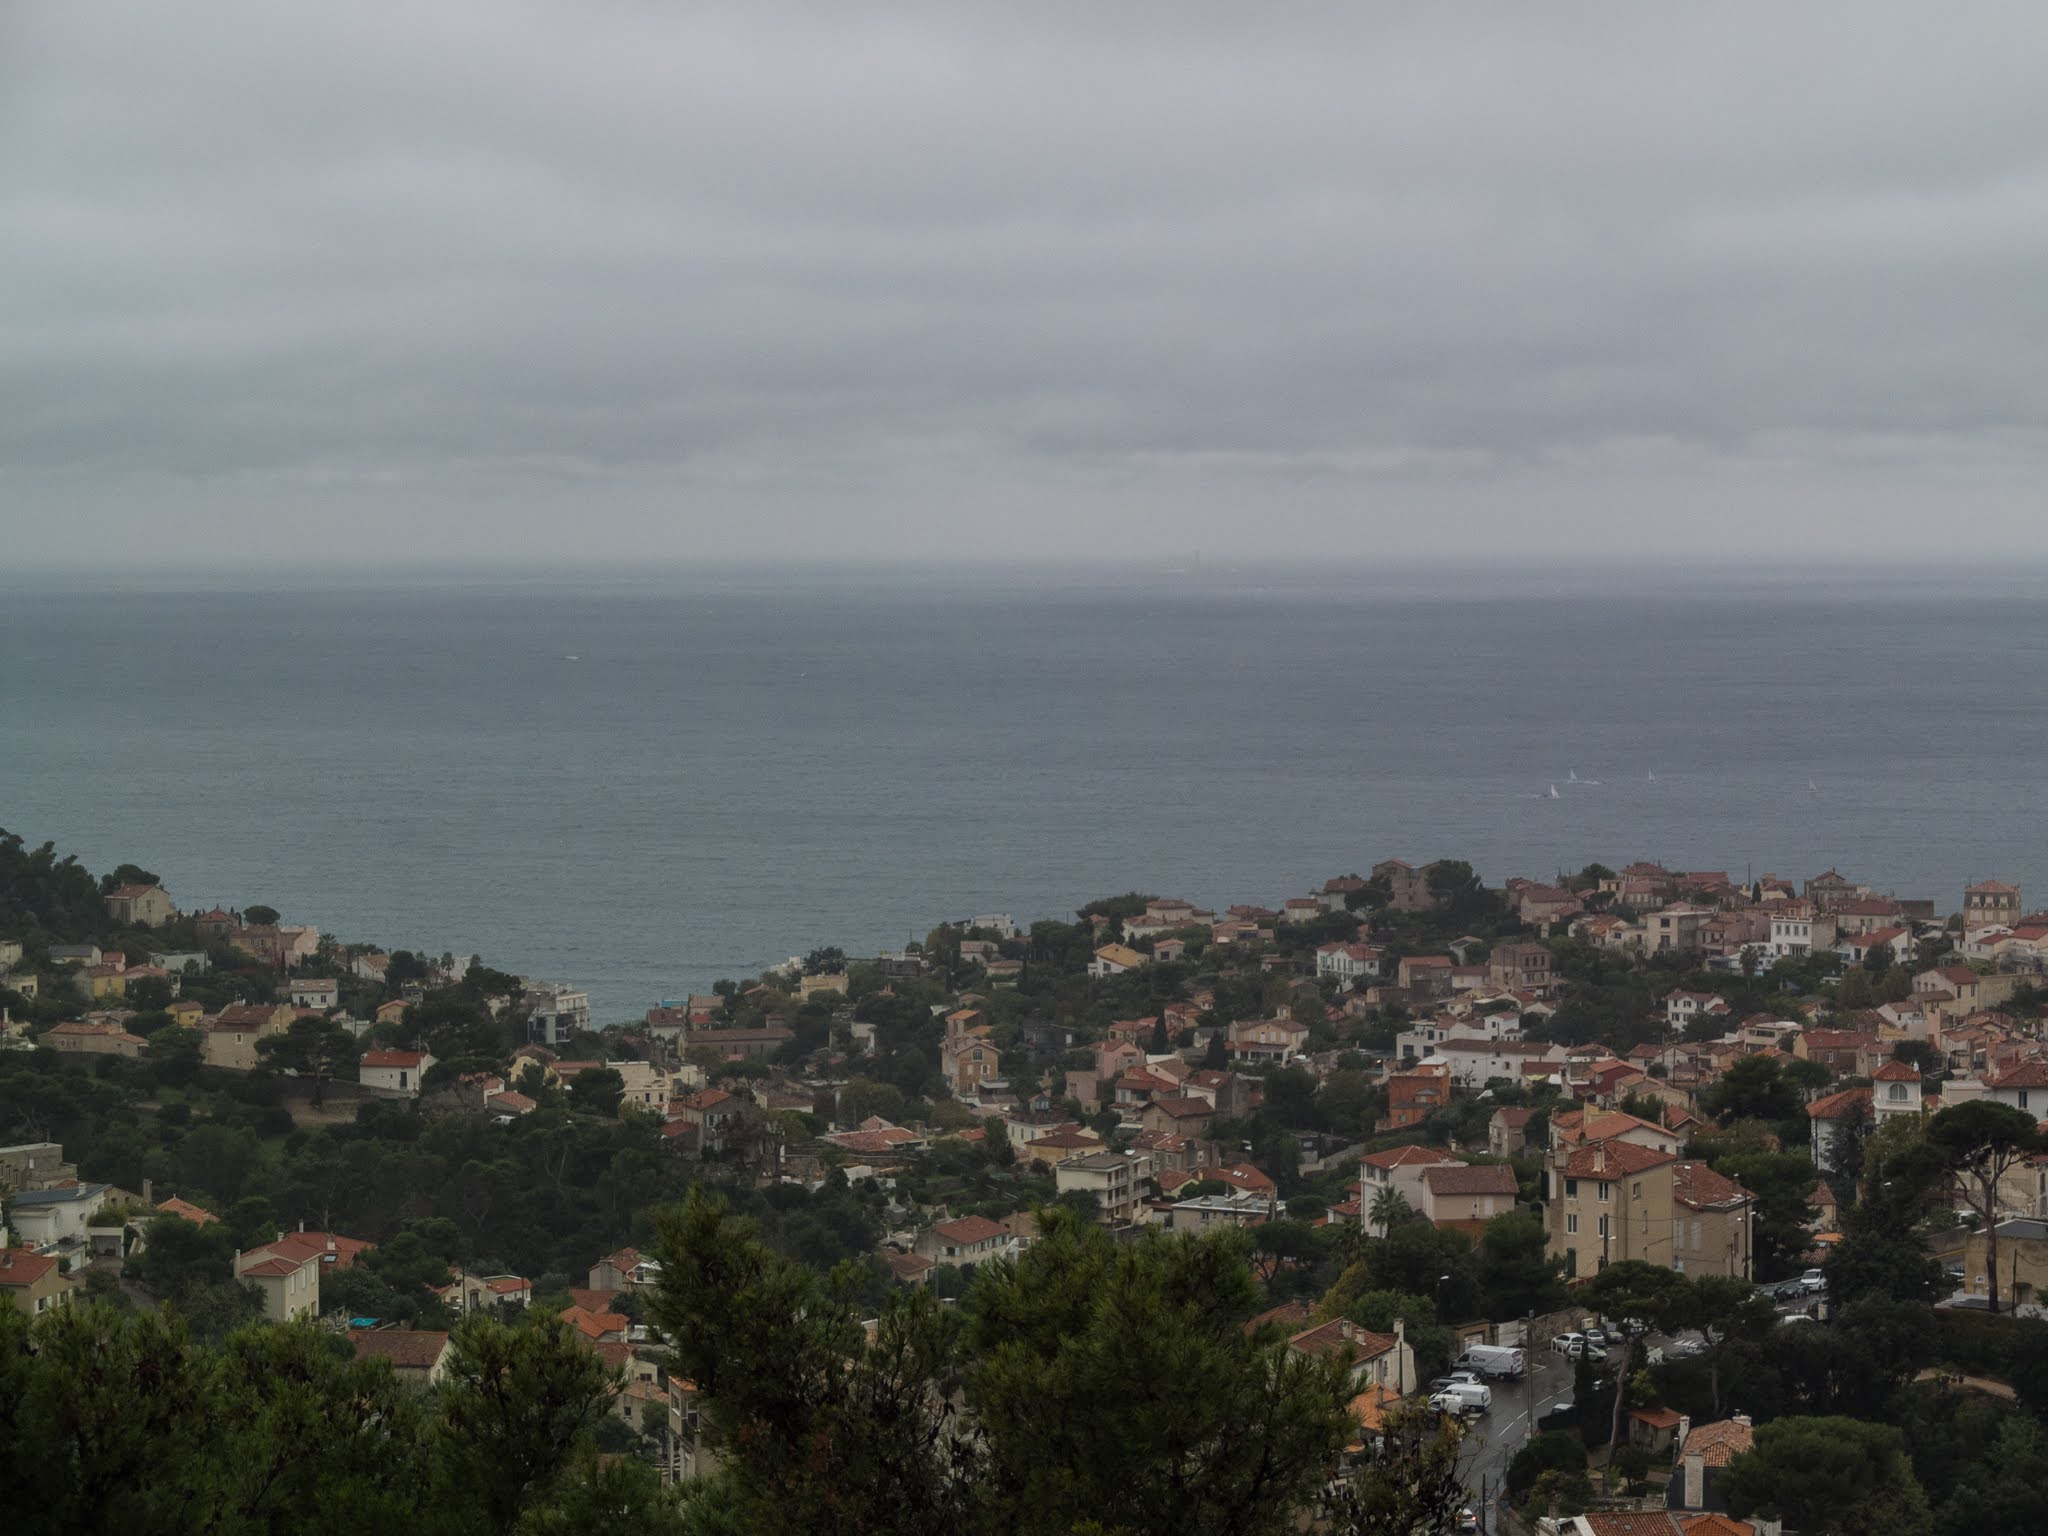 View from La Garde looking out to the Mediterranean Gulf of Lion